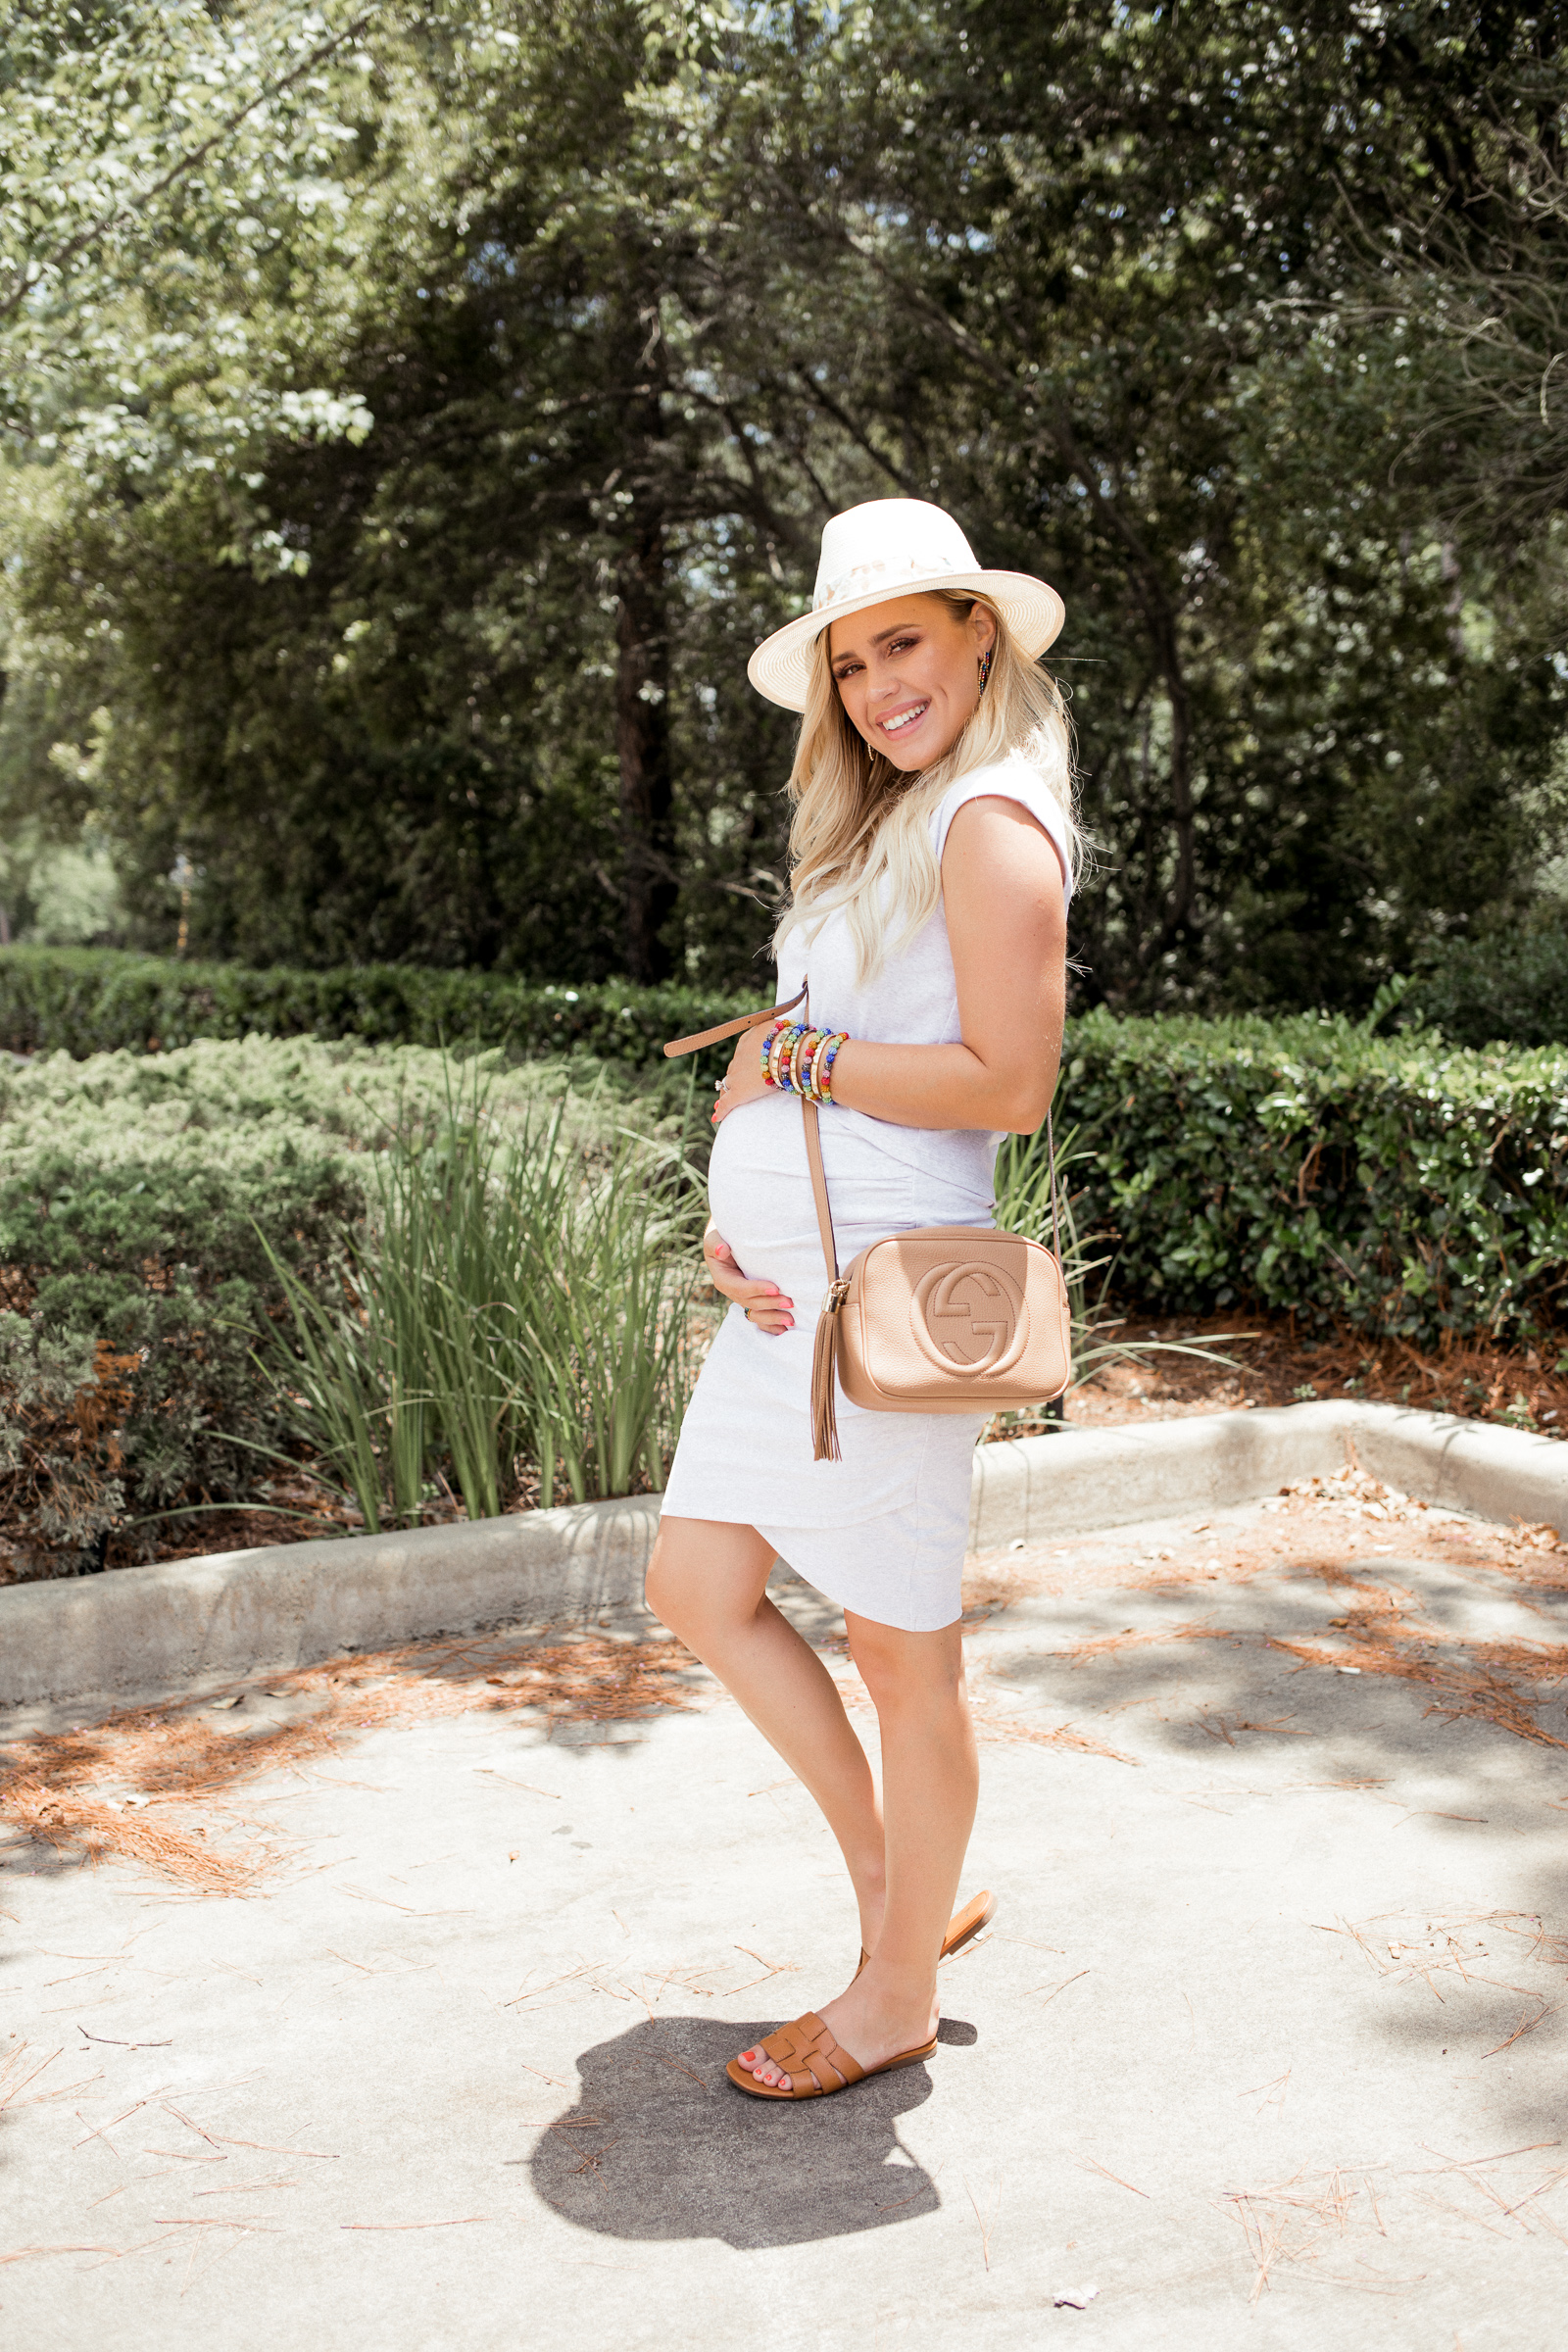 Houston fashion blogger Elly Brown wears Tenth street hat with cognac slides for the summer